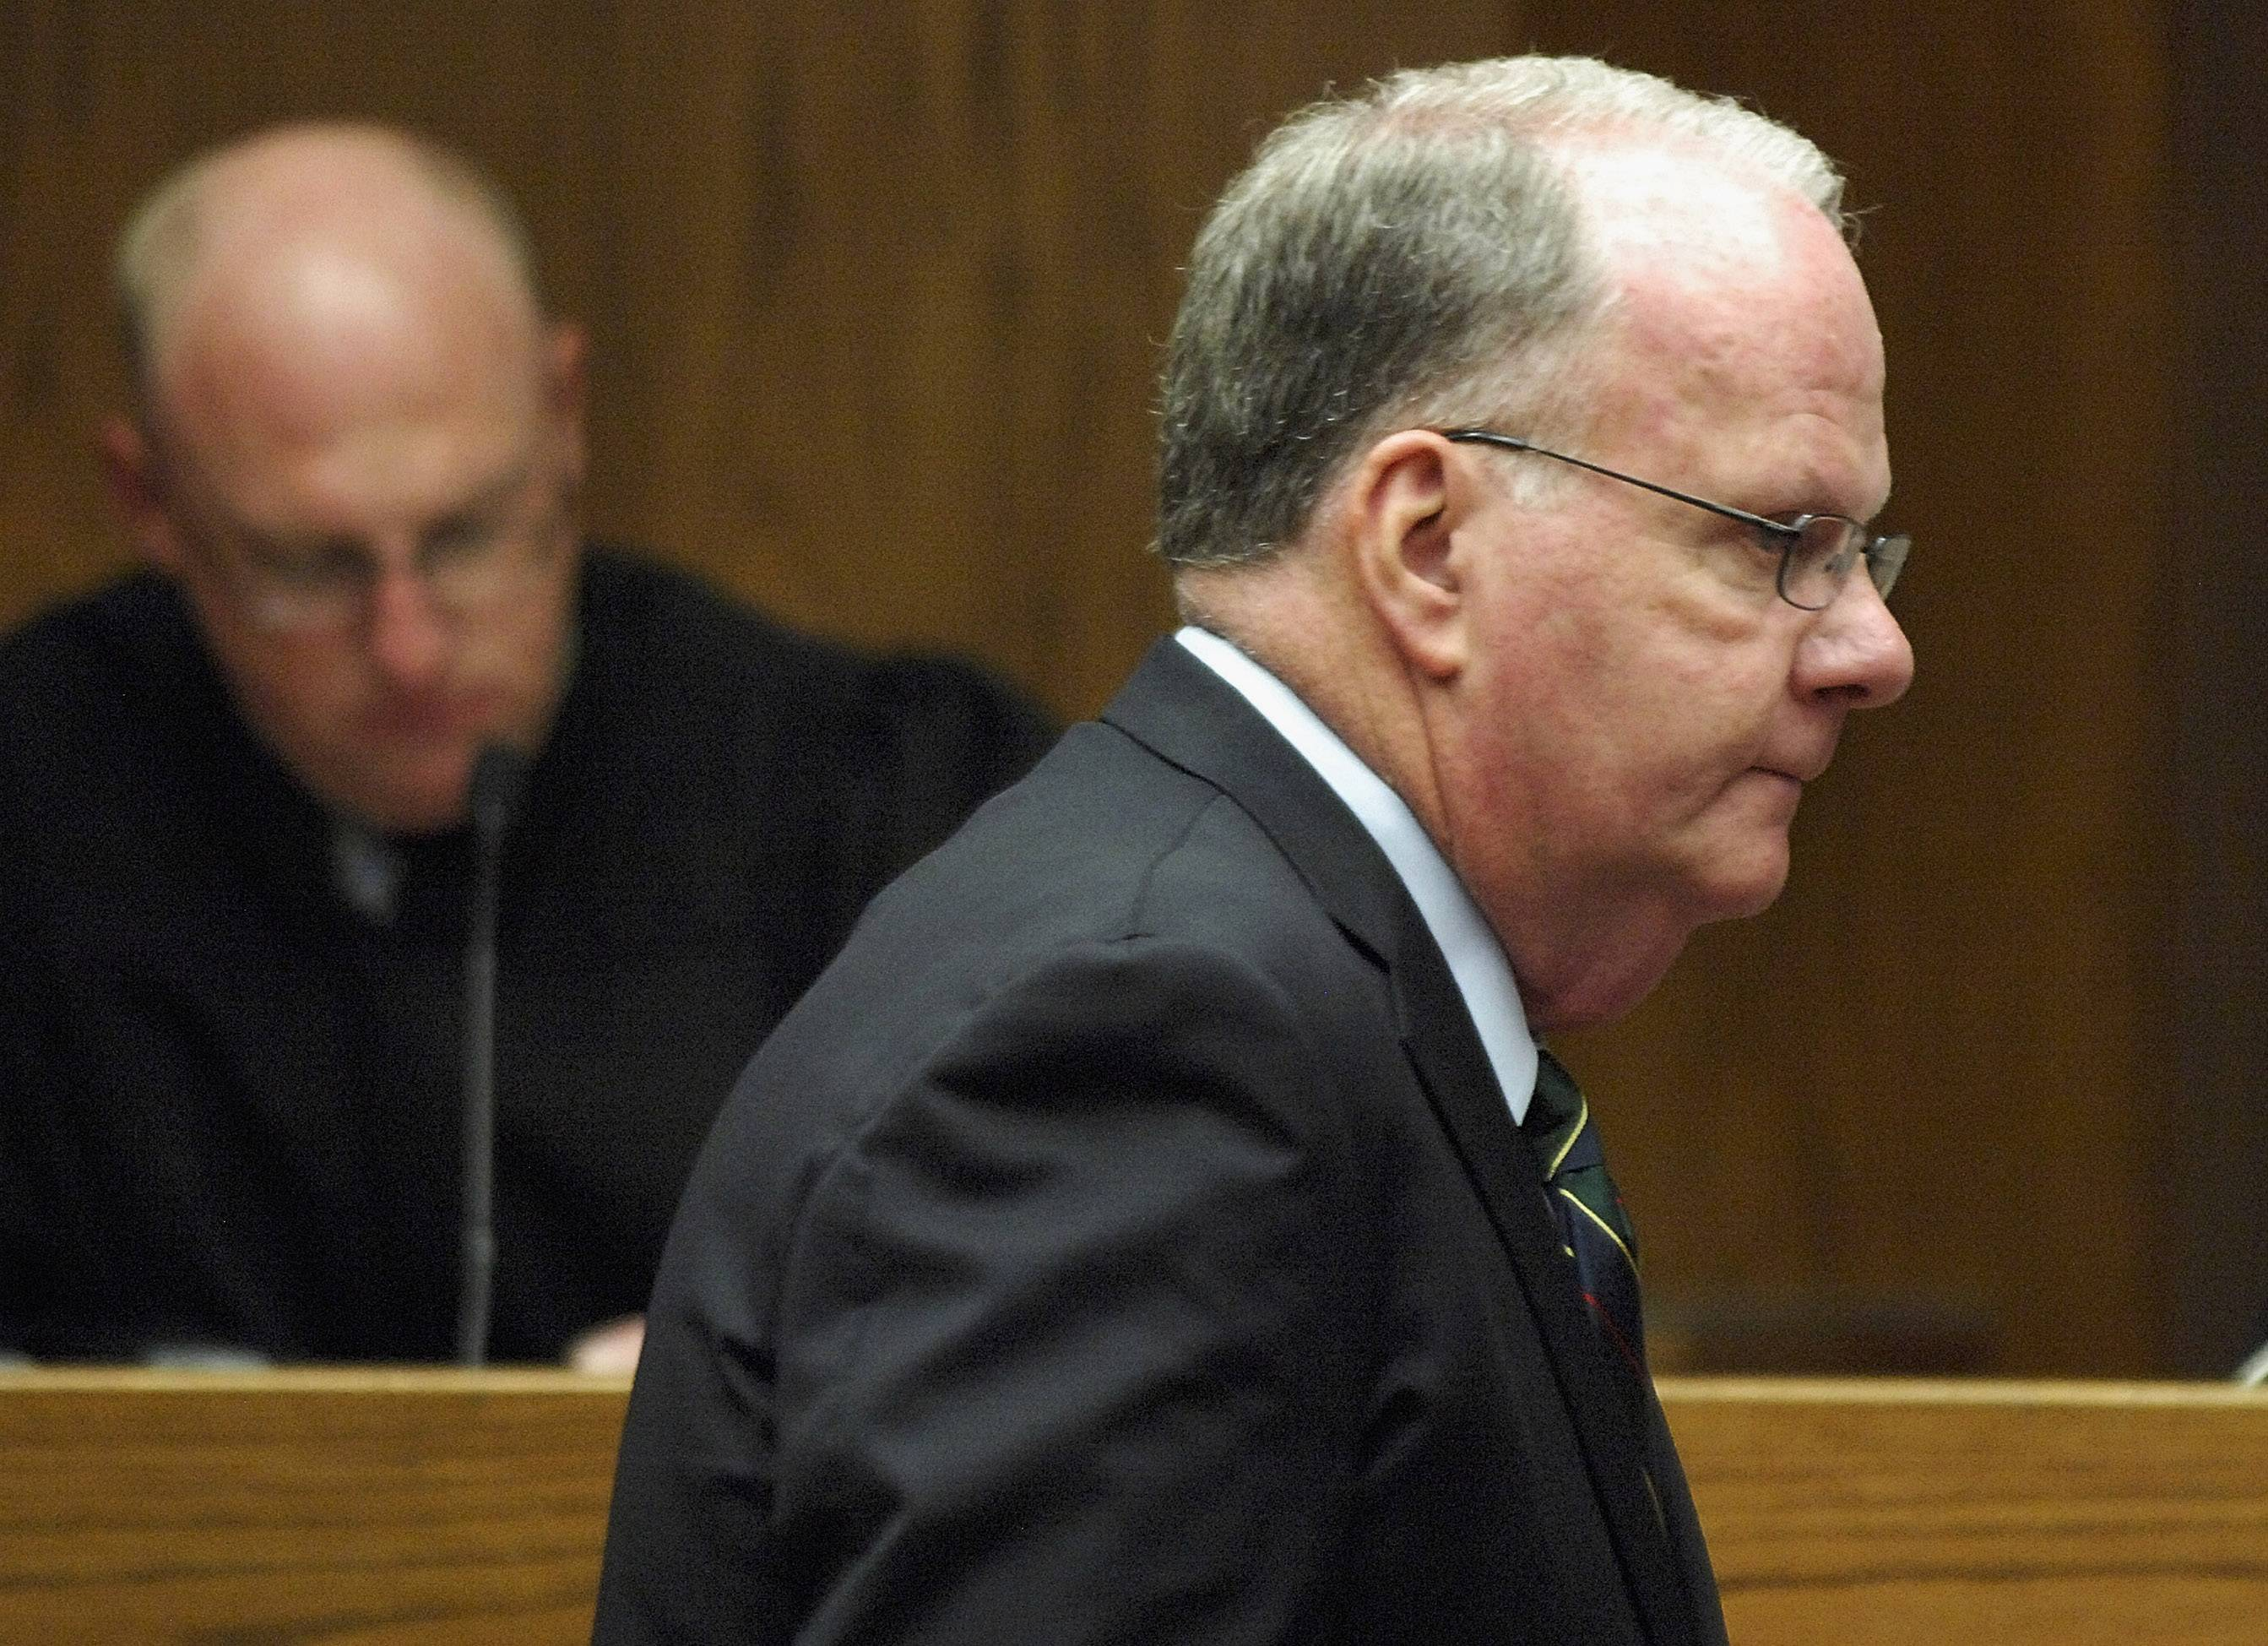 Associated Press/April 23, 2014 Former Illinois State University President Timothy Flanagan was found guilty of disorderly conduct Monday.